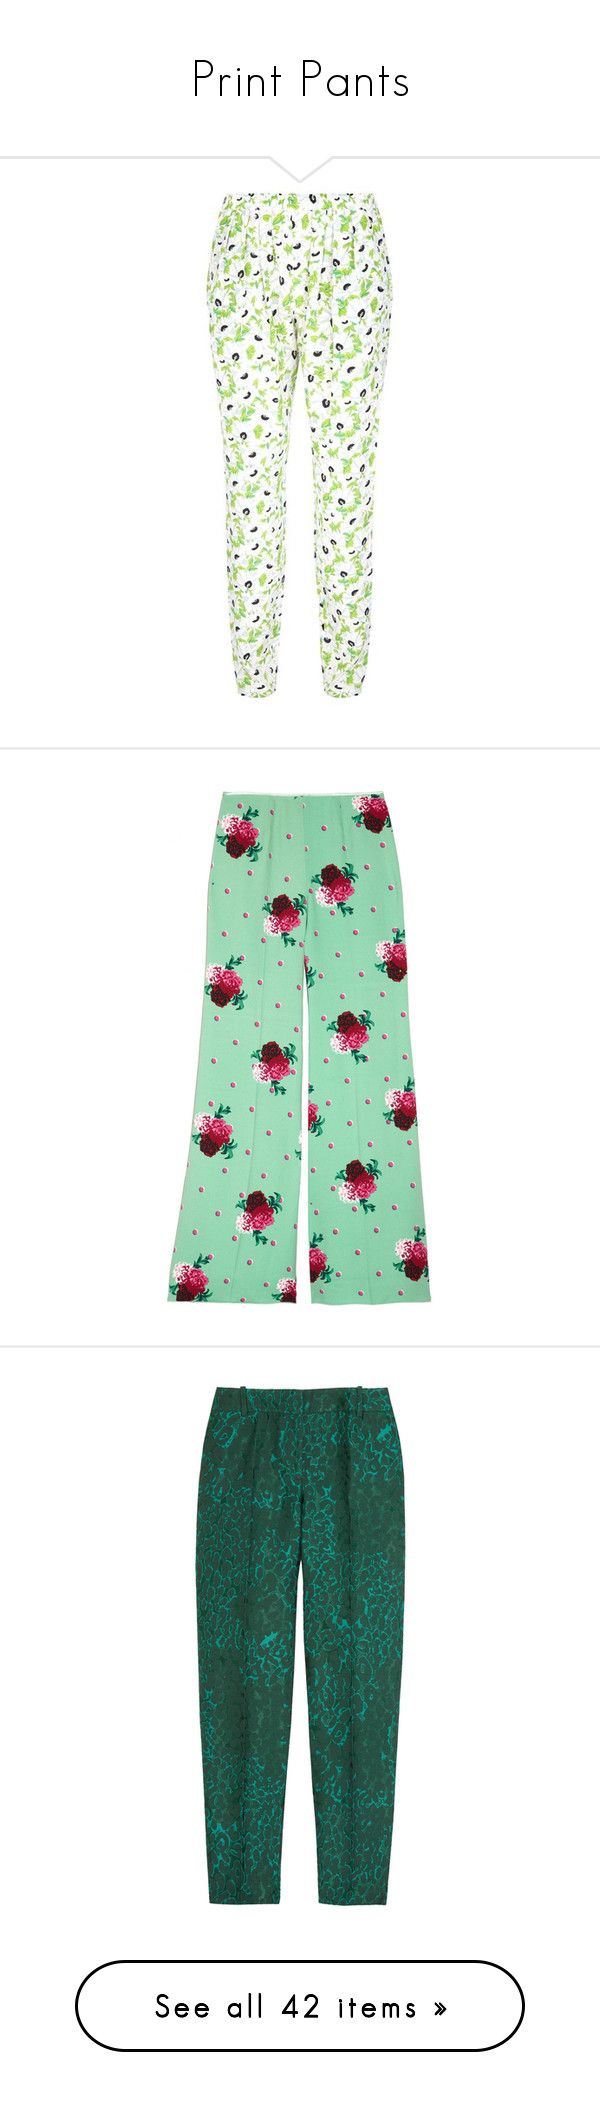 """Print Pants"" by claudiagir ❤ liked on Polyvore featuring pants, peg leg pants, white trousers, relaxed pants, relaxed fit pants, white floral pants, mint, mint green pants, mint pants and floral print wide leg pants"